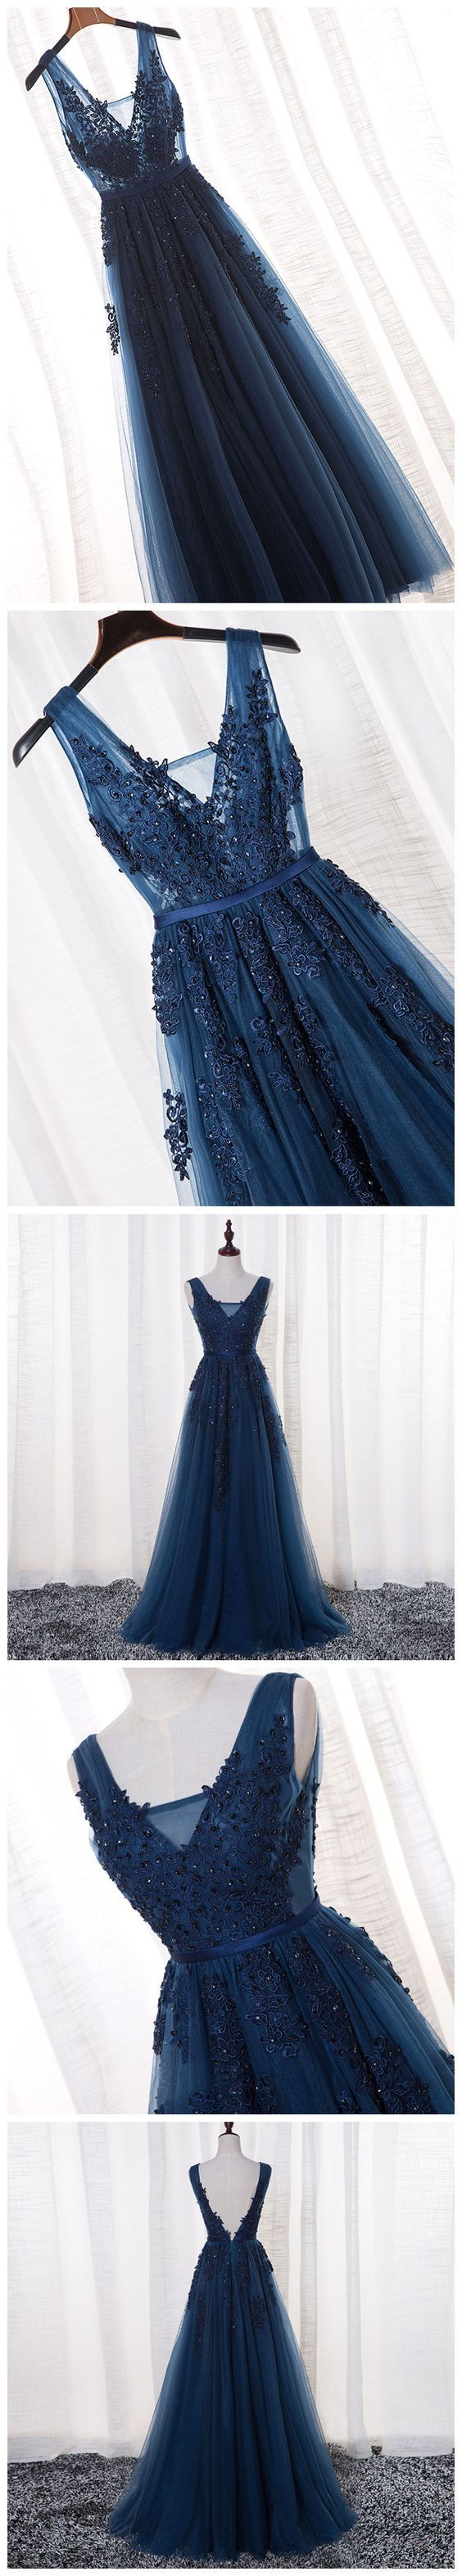 A-LINE V-NECK FLOOR LENGTH TULLE PROM DRESS/EVENING DRESS WITH APPLIQUES SKY023